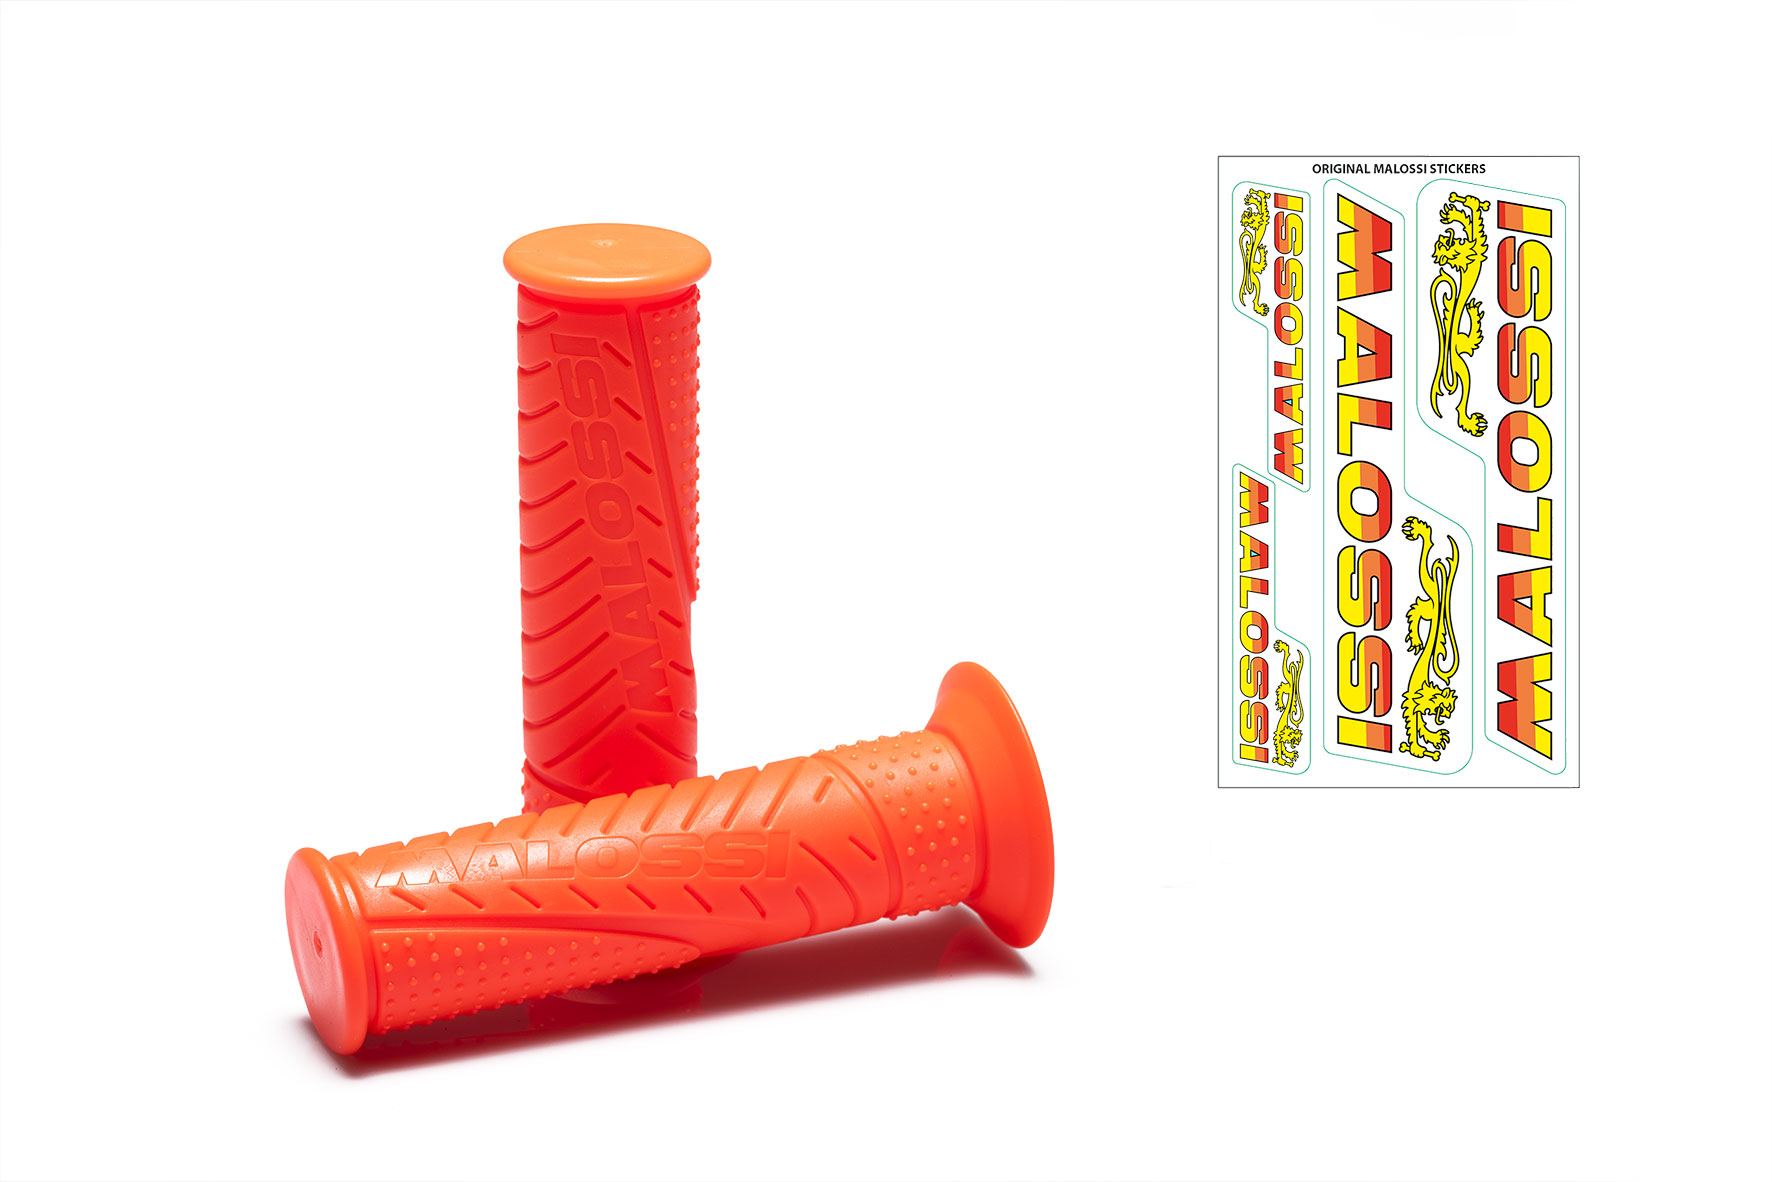 2 MALOSSI MHR FLUO ORANGE GRIPS (mod. with side fastening)